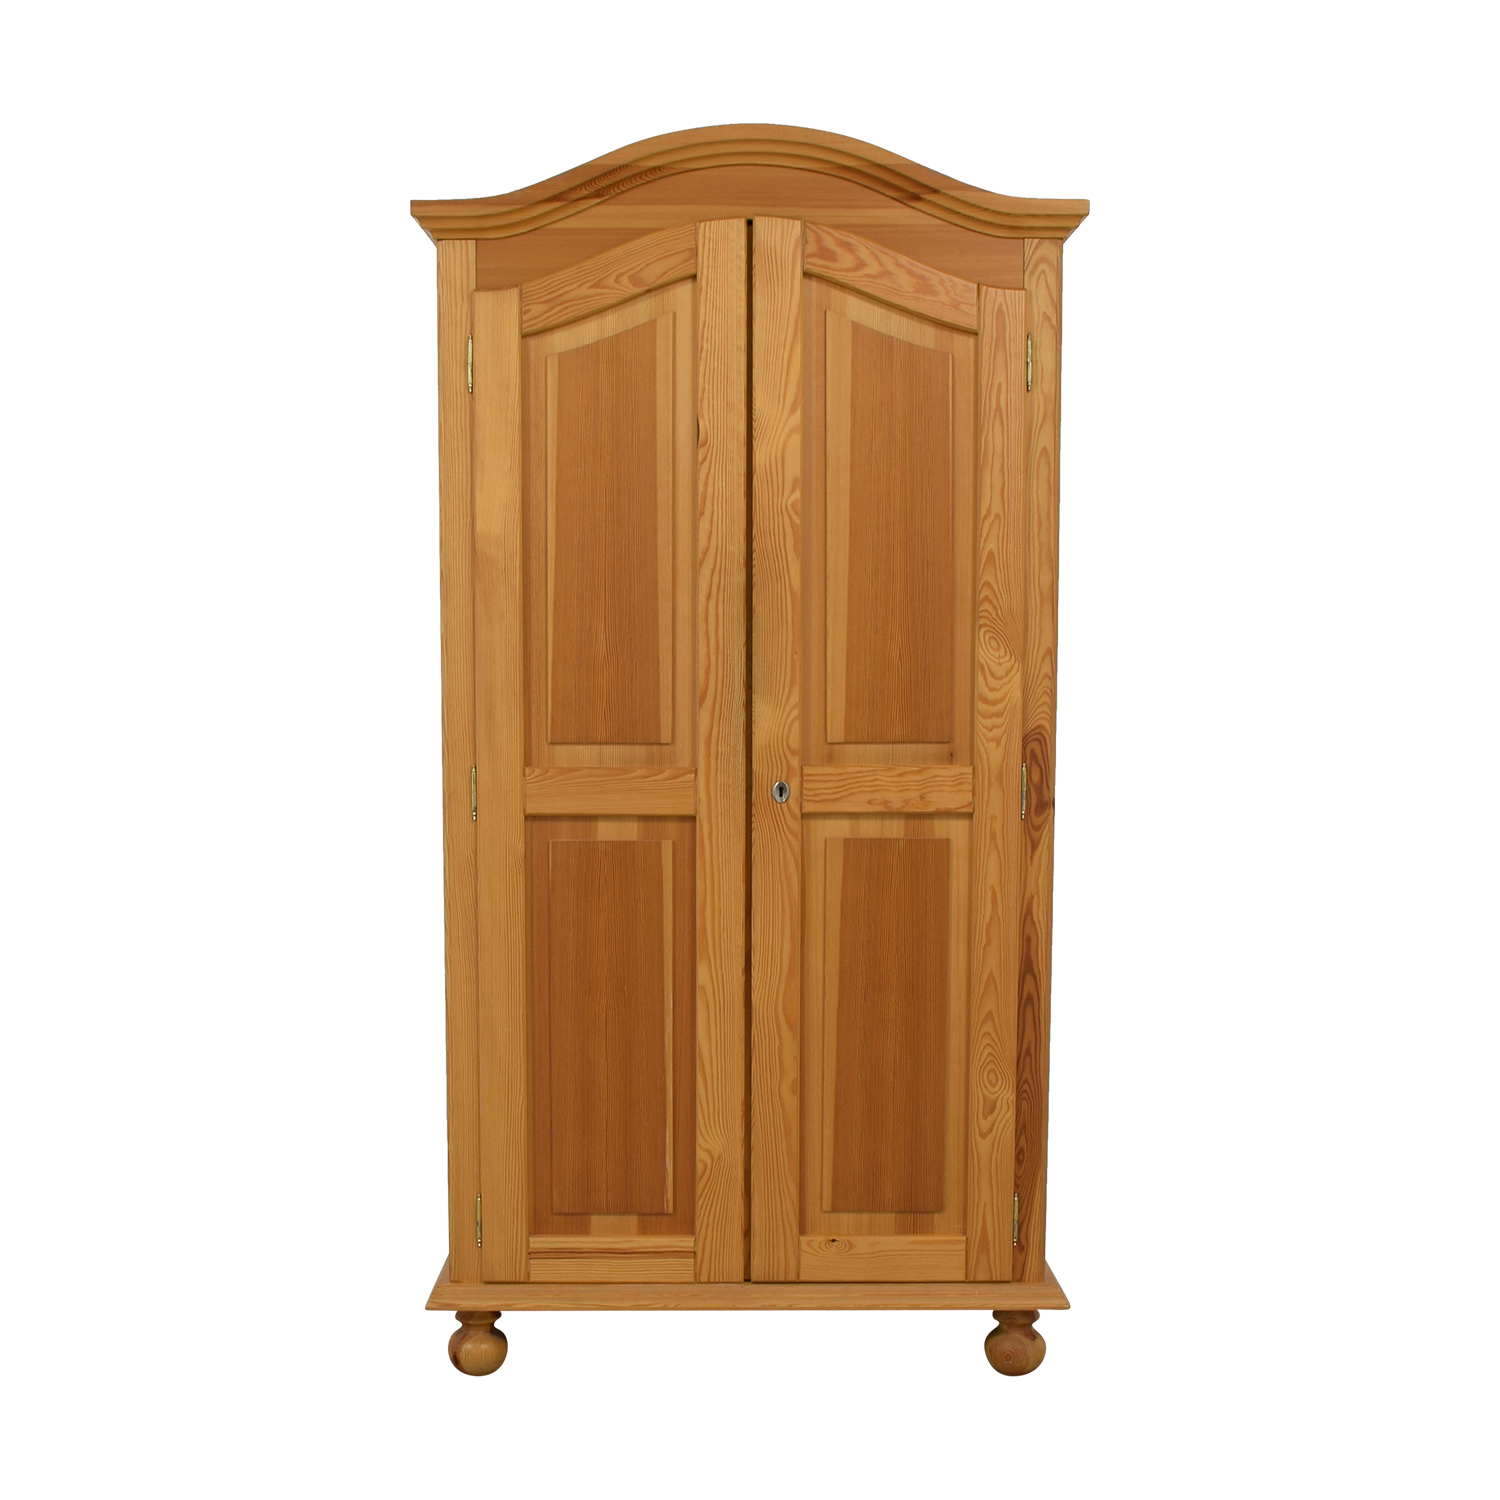 The Door Store The Door Store Wood Wardrobe Armoire discount